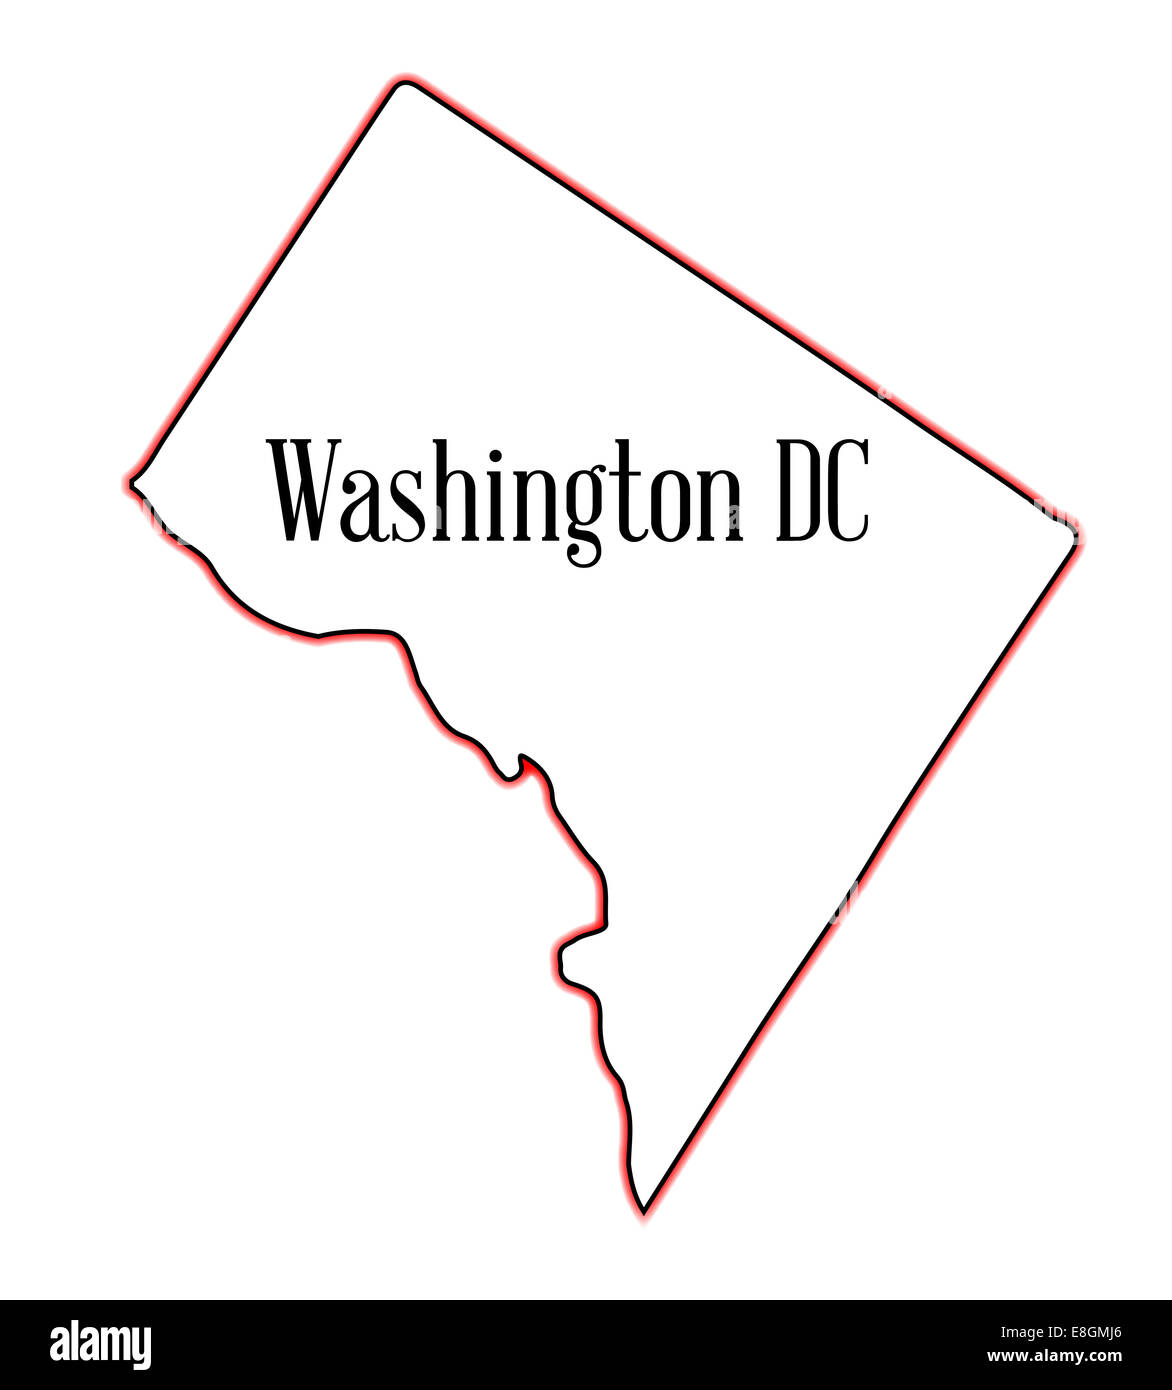 Outline Map Of The State Of Washington Dc Over A White